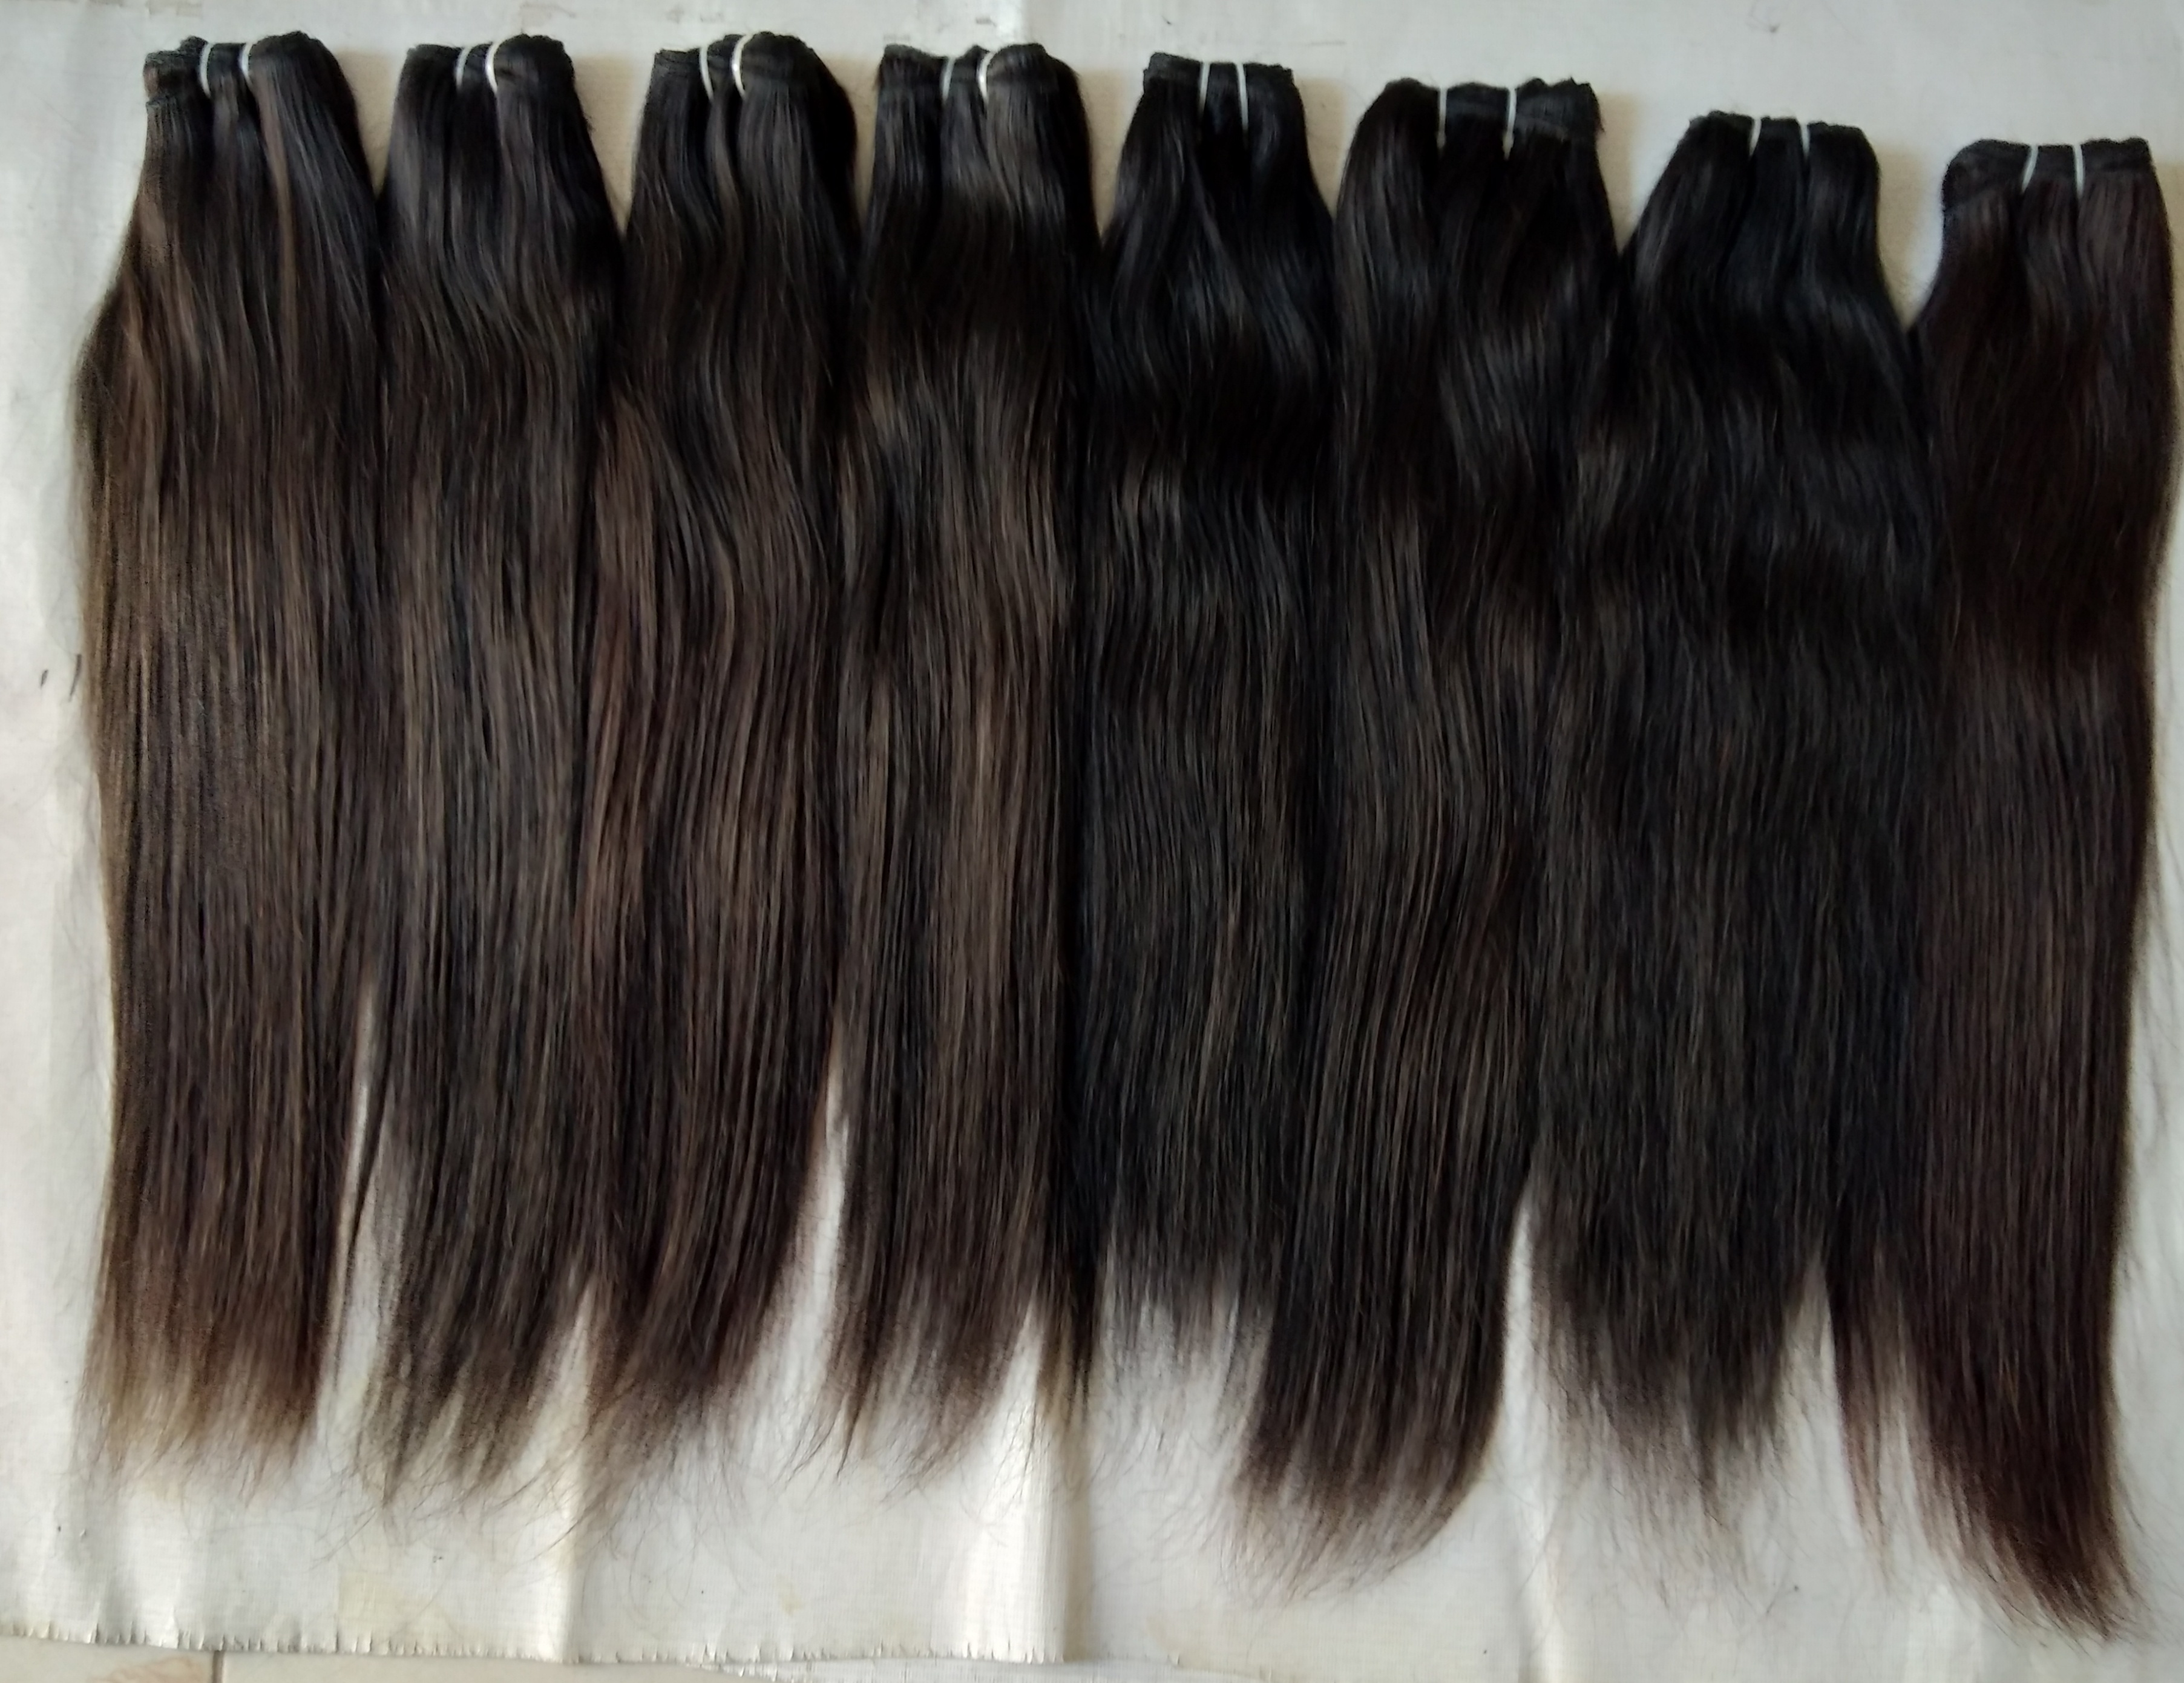 100% Human Hair Extensions Natural Color Straight ,Temple Donated Raw Human Hair